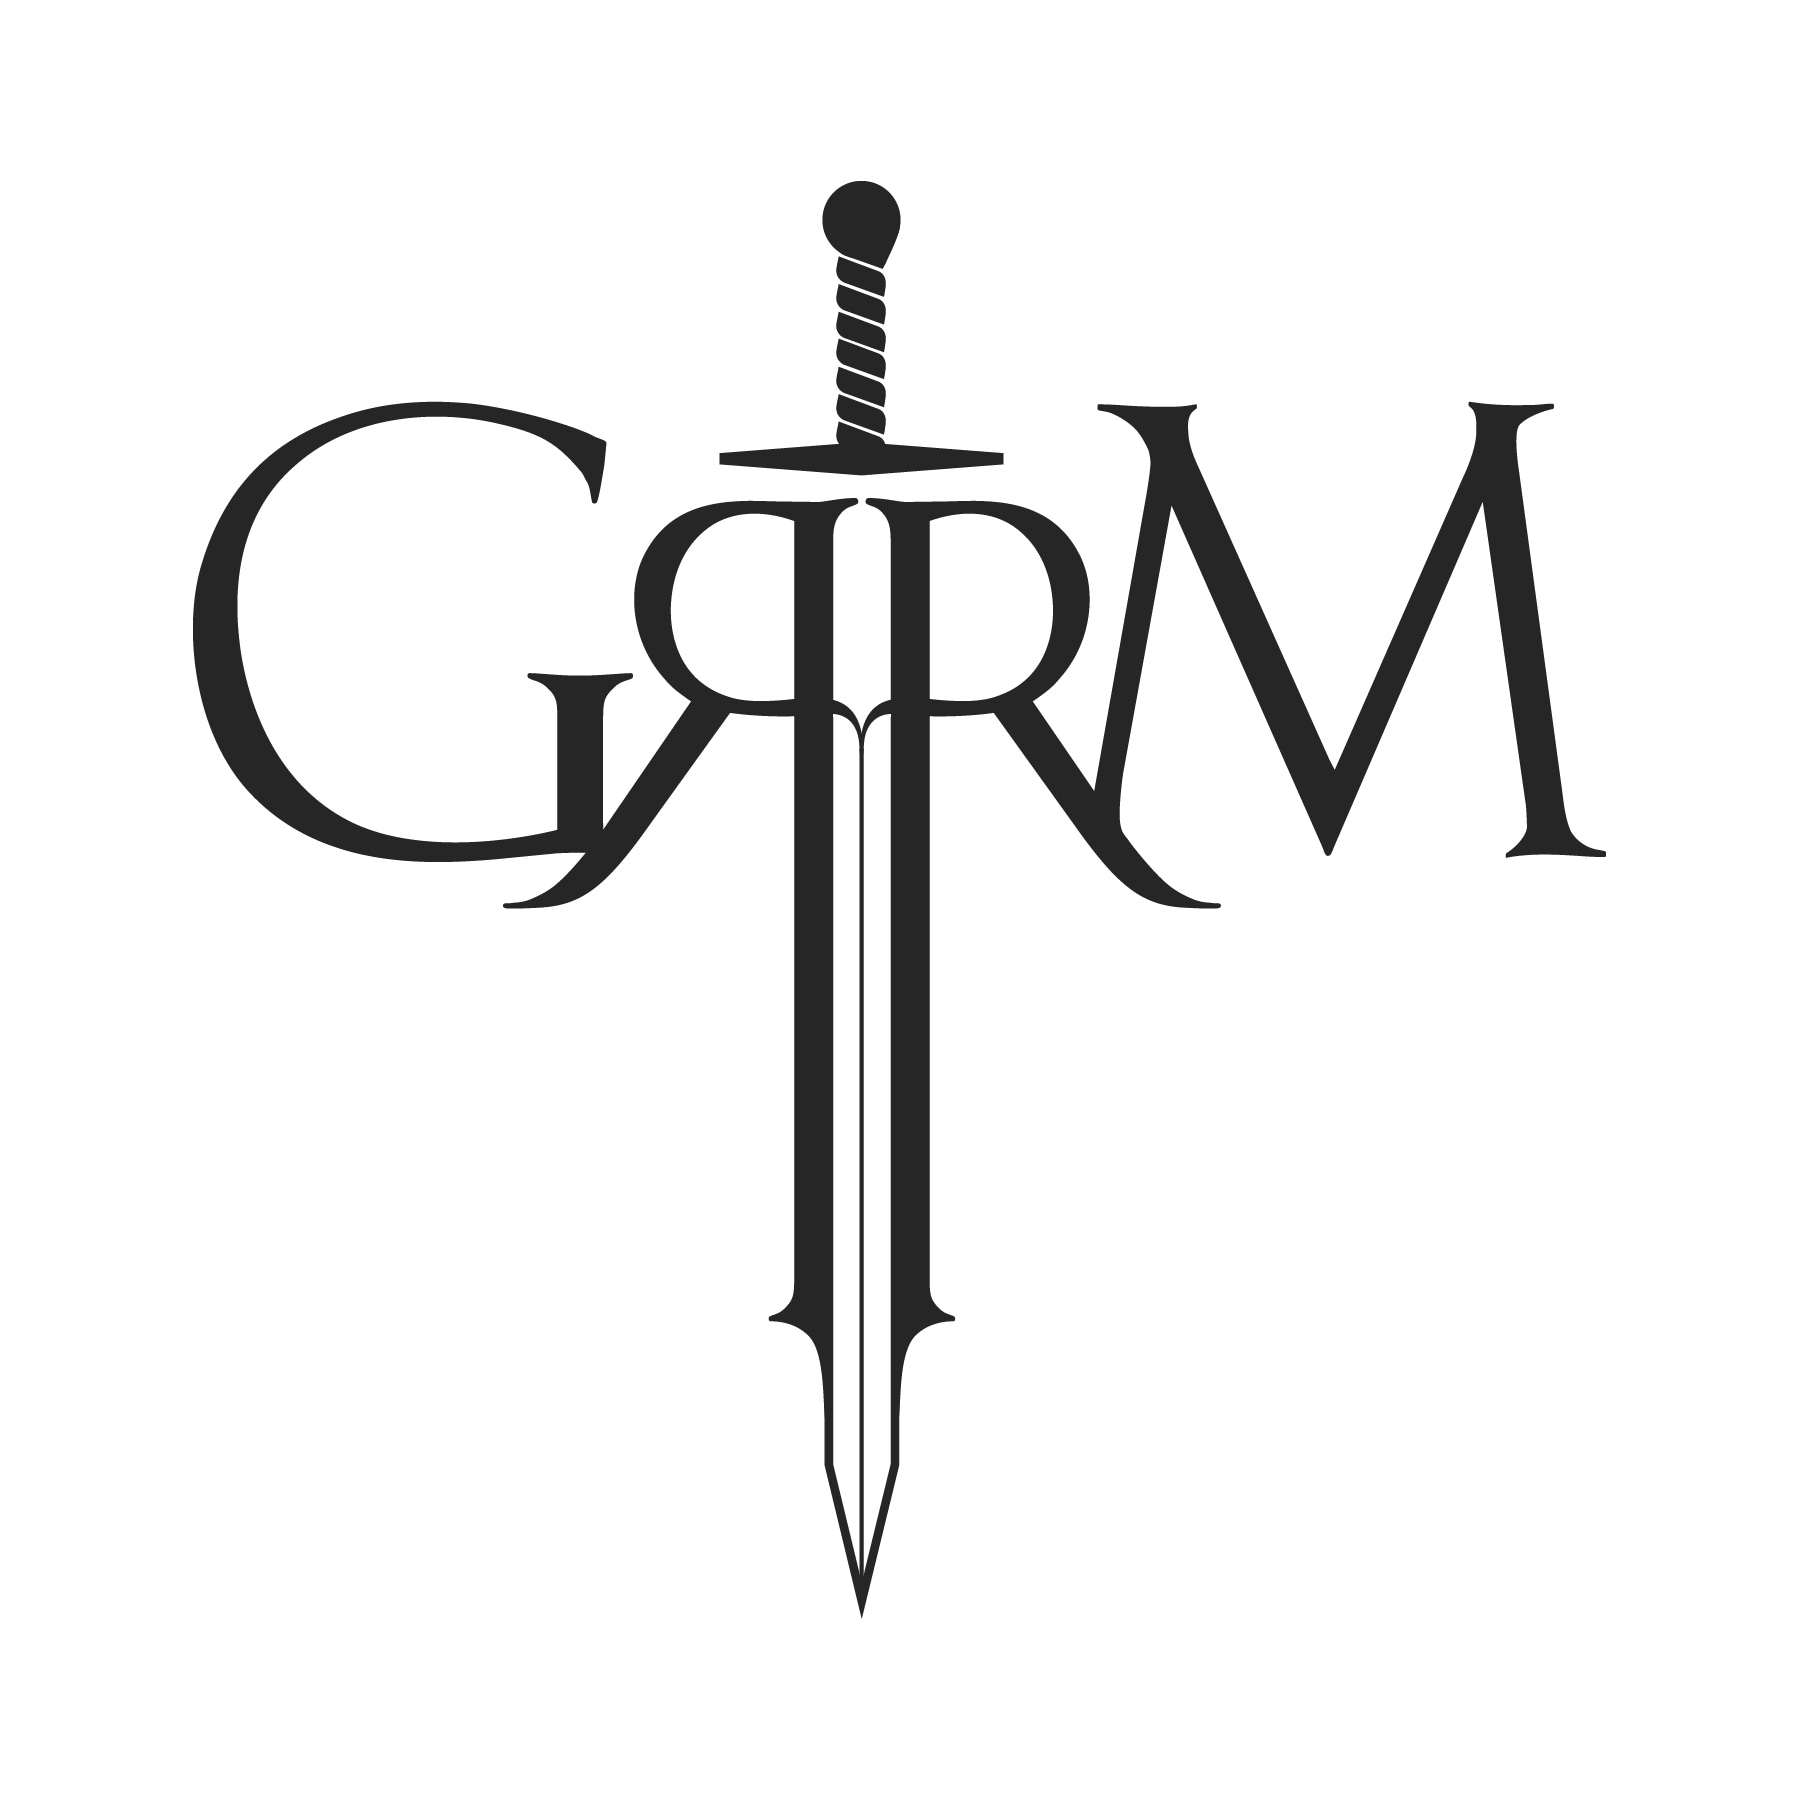 GRRM Box promo codes